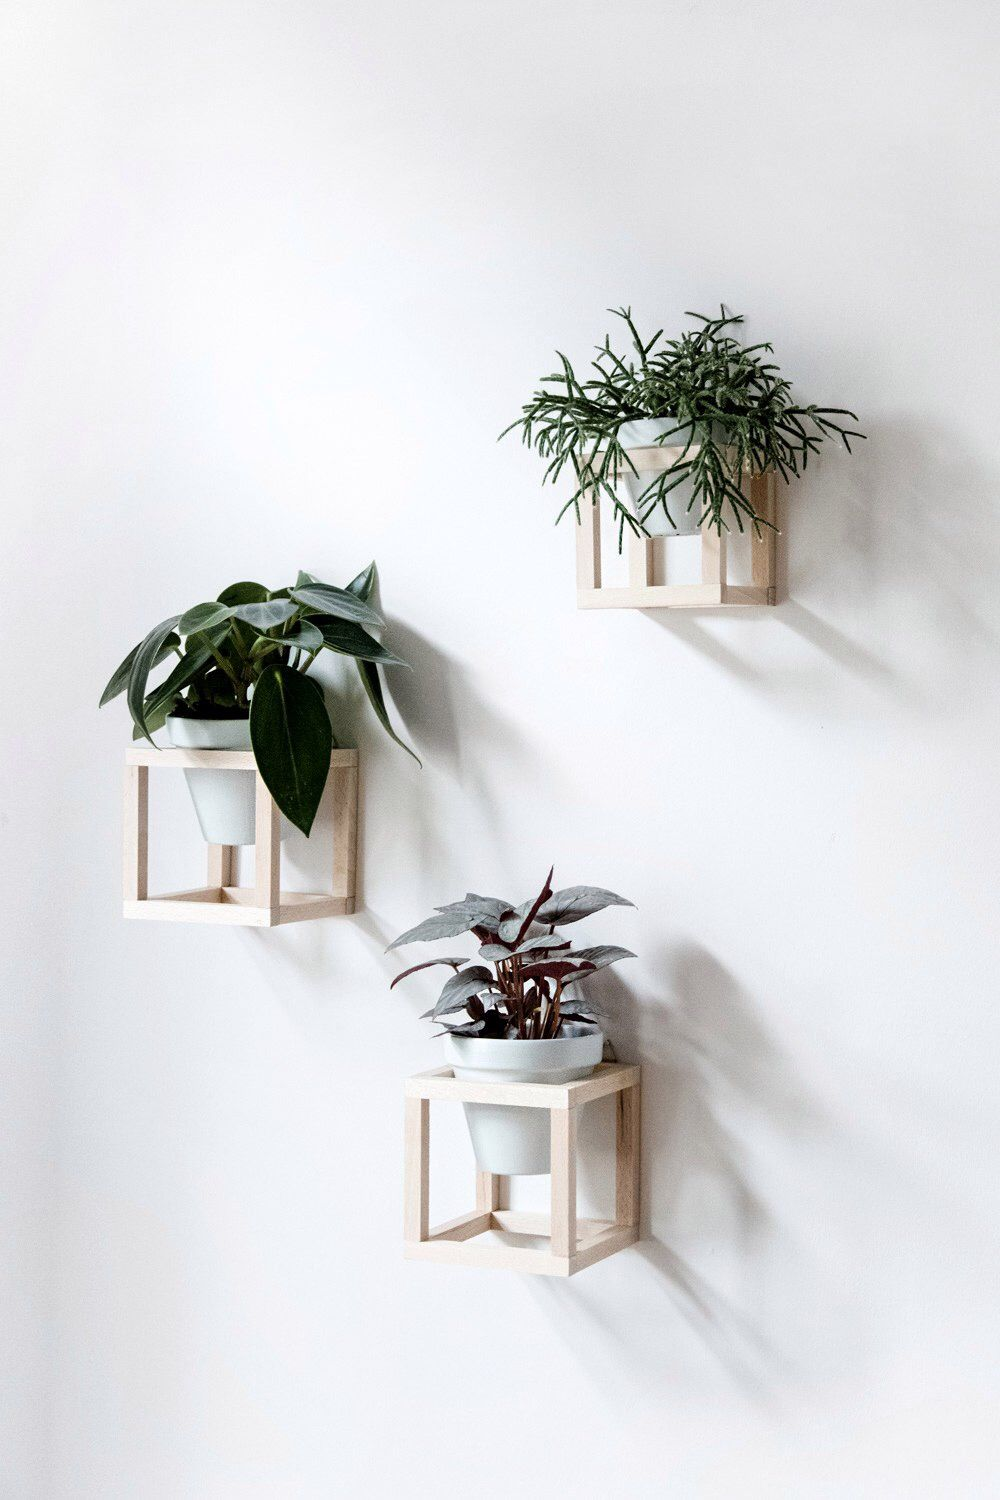 DIY Hanging Plant Holder   Wall Decor   Home Inspiration And Ideas